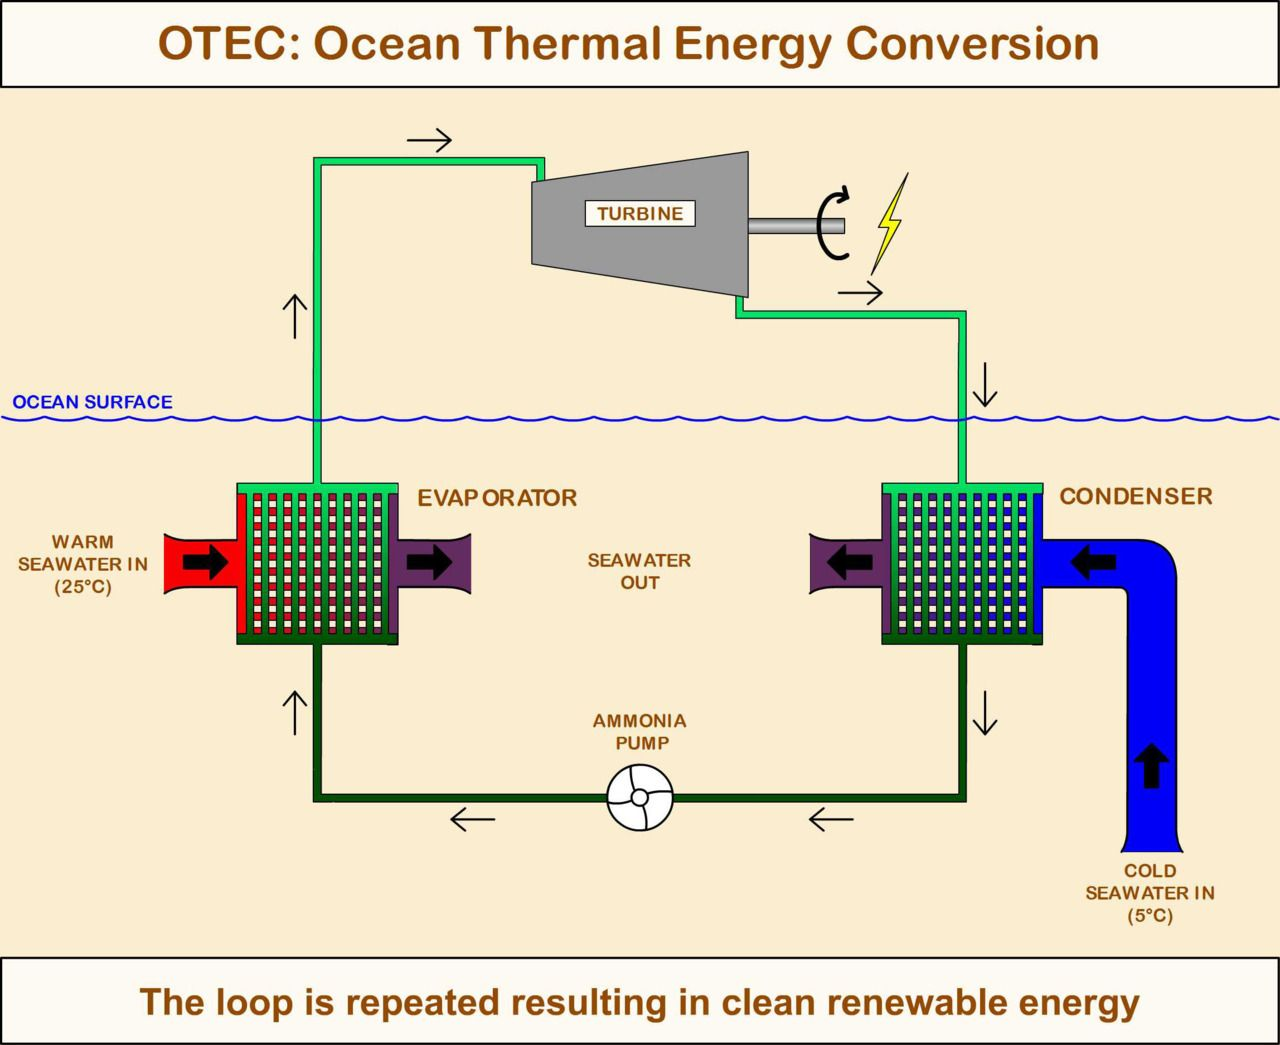 thermal energy diagram wiring diagram forward geothermal energy diagram otec production diagram ocean thermal energy conversion [ 1280 x 1045 Pixel ]